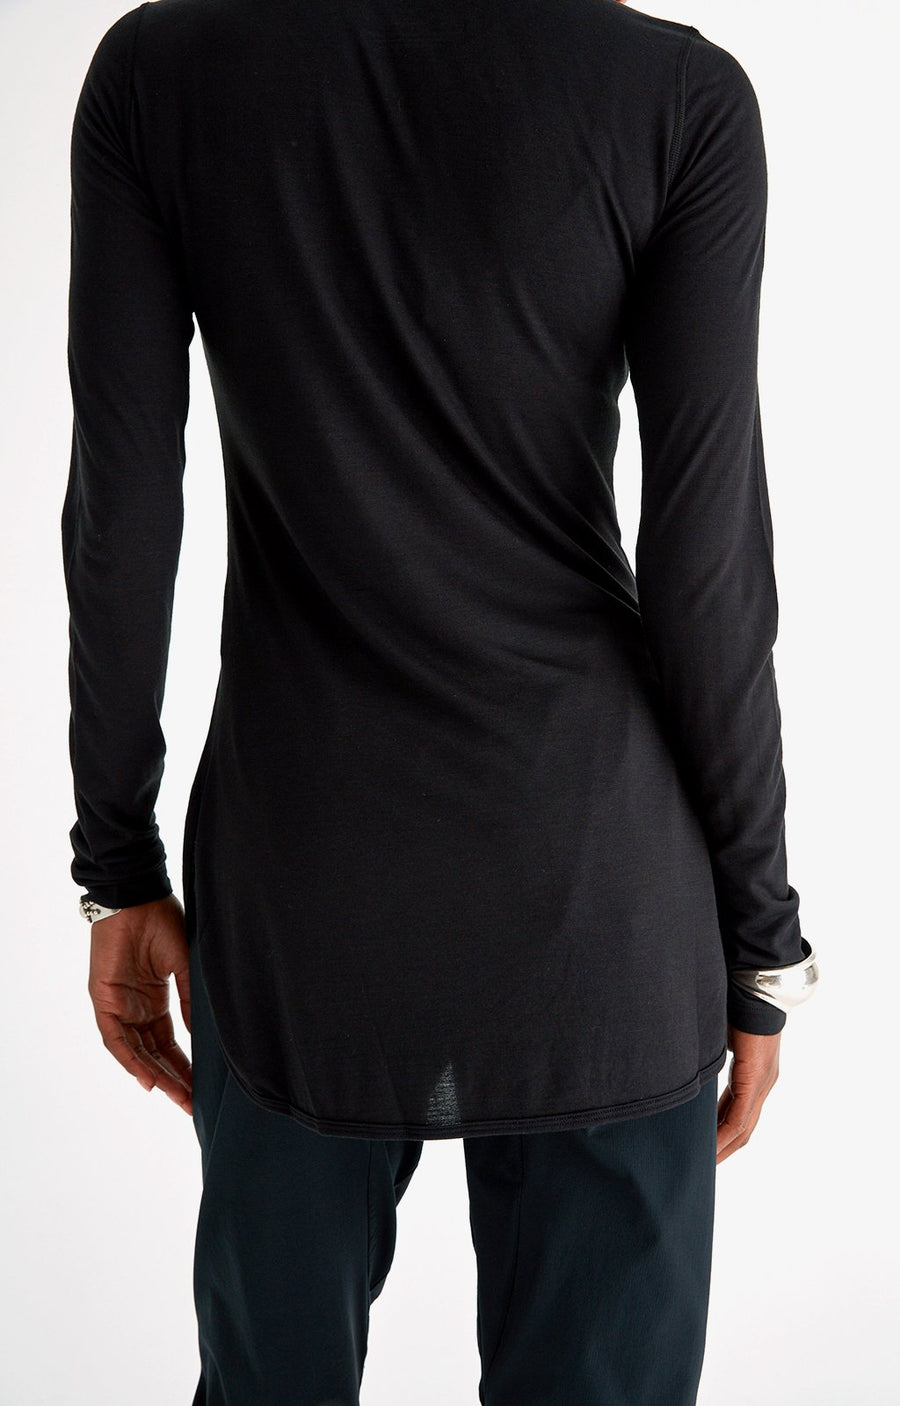 Paskho Eloquent – Sensually Soft Silk Knit Travel Henley in Black